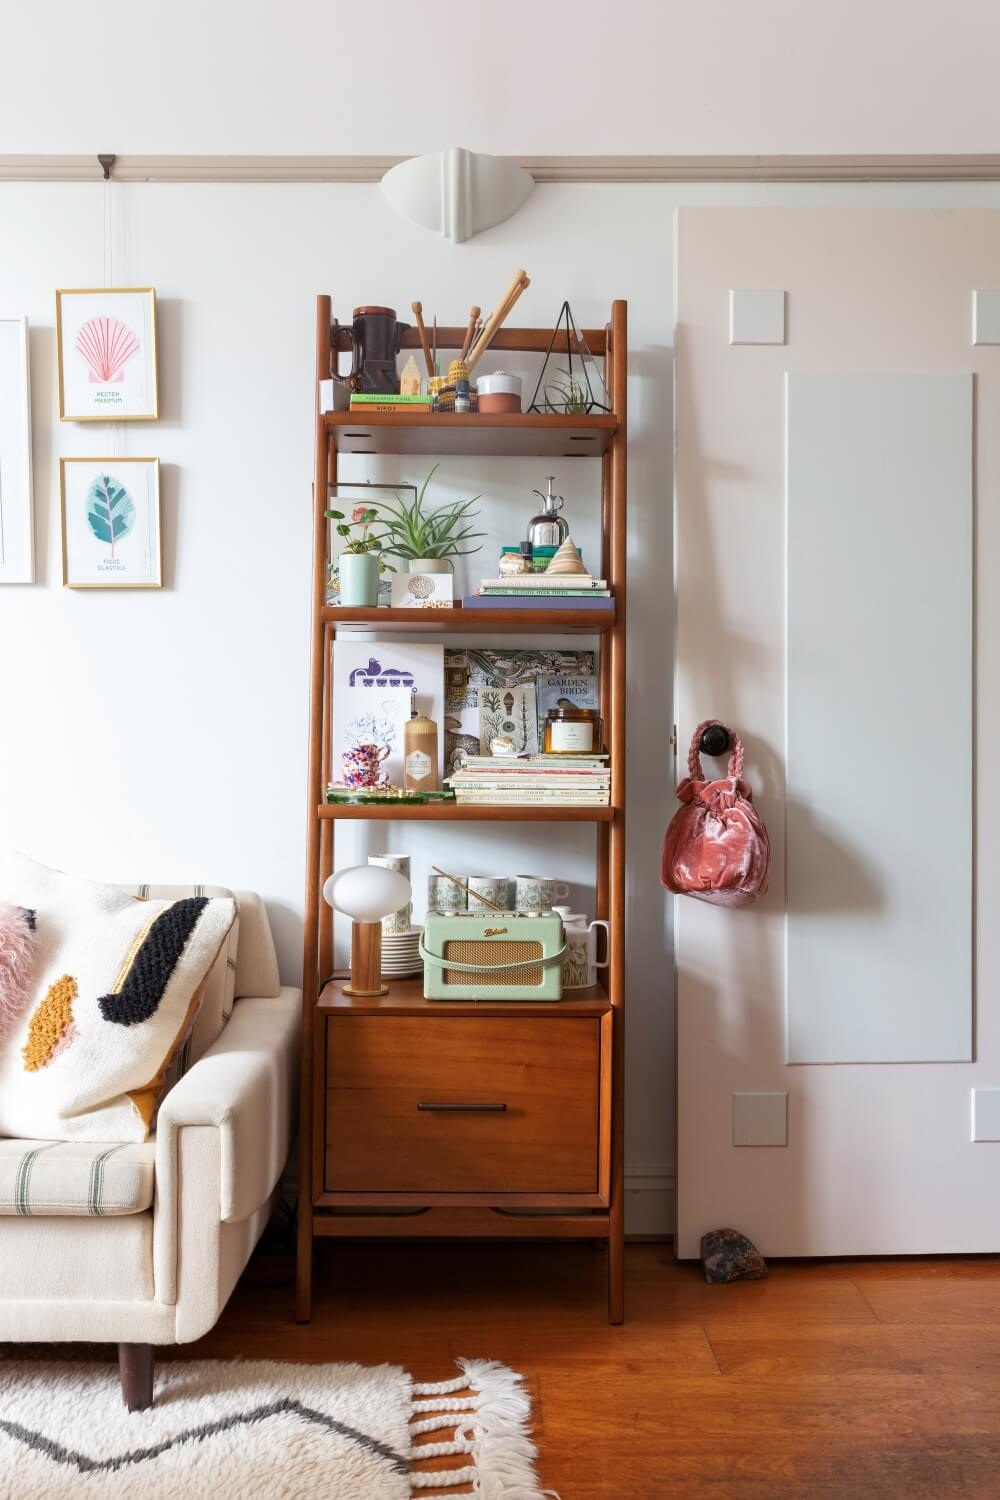 West elm bookcase in living room used to store decorative items and homeware